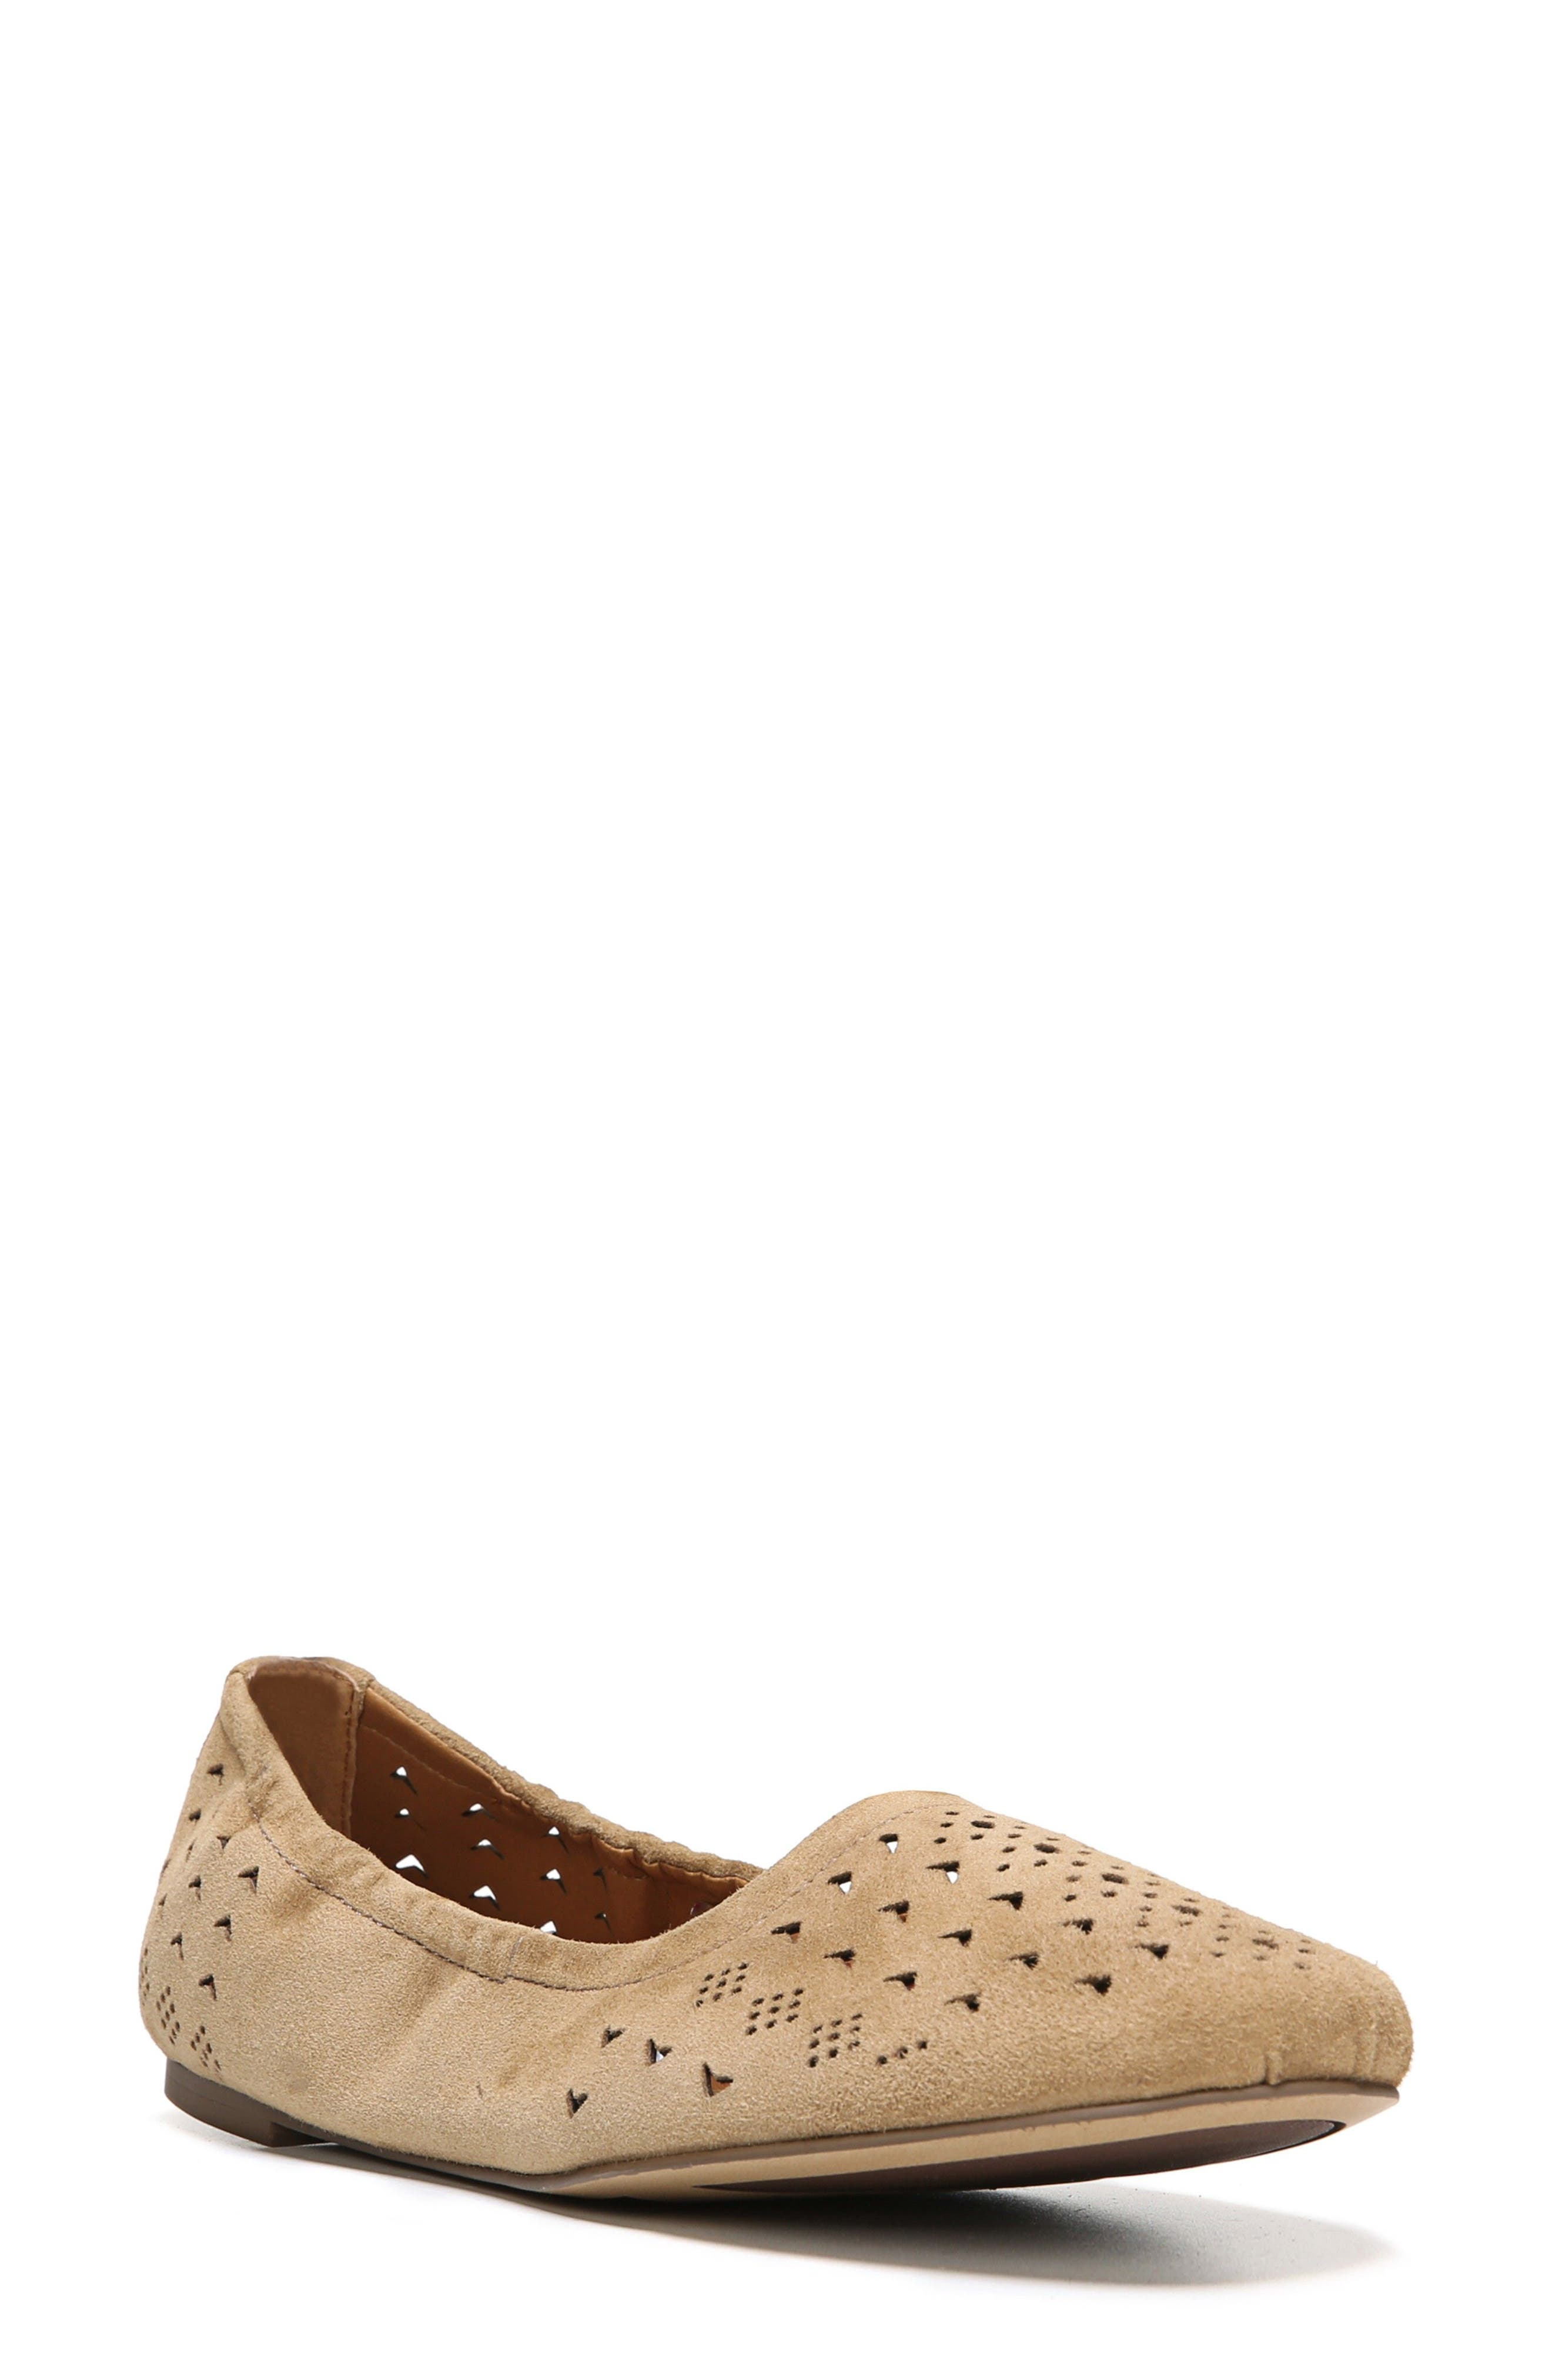 Alternate Image 1 Selected - SARTO by Franco Sarto Brewer Perforated Ballet Flat (Women)